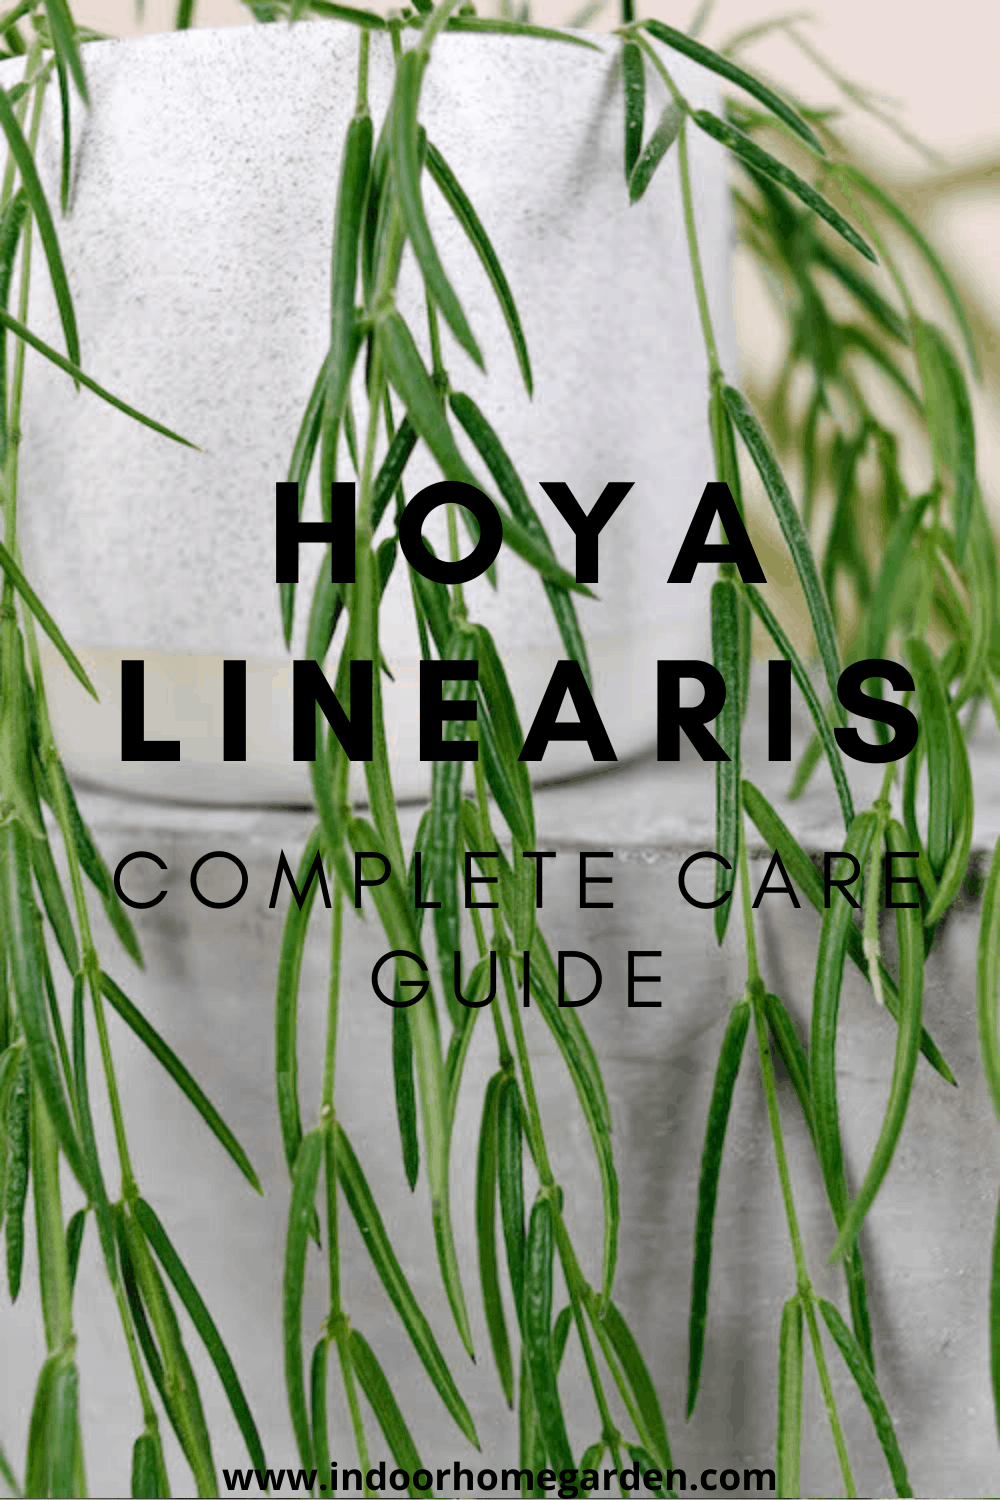 Hoya linearis complete care guide